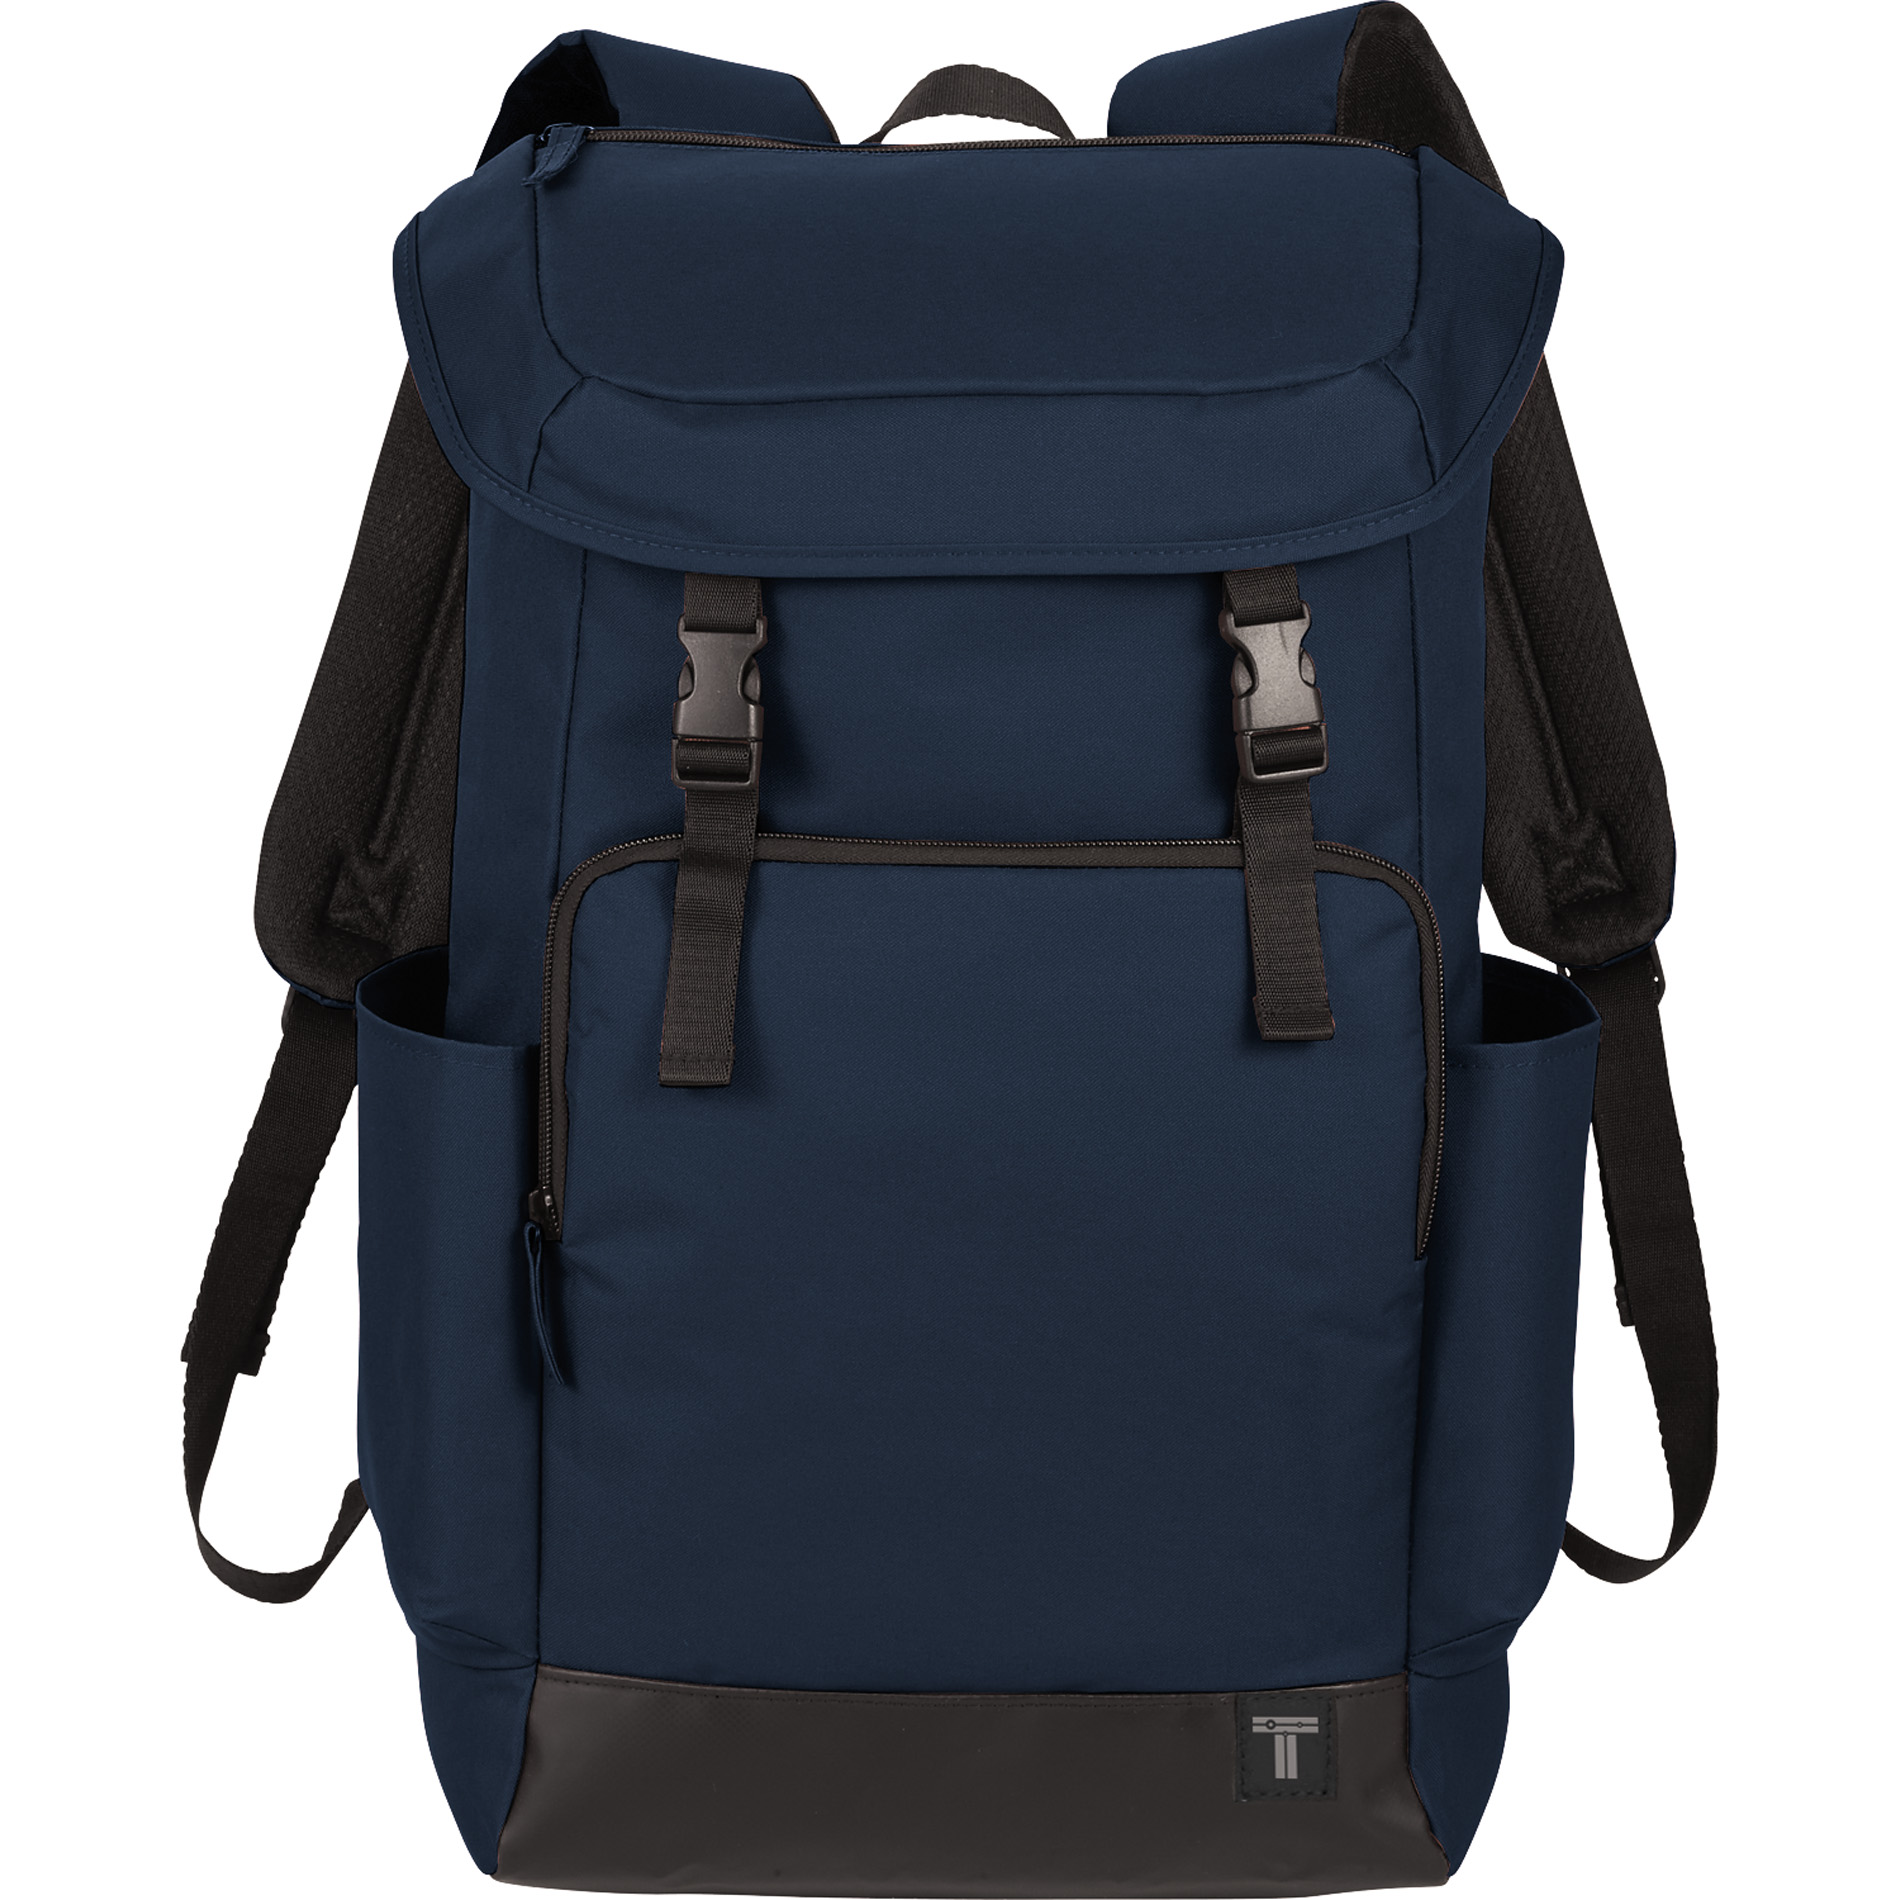 "Tranzip 2020-02 - 15"" Commuter Computer Backpack"